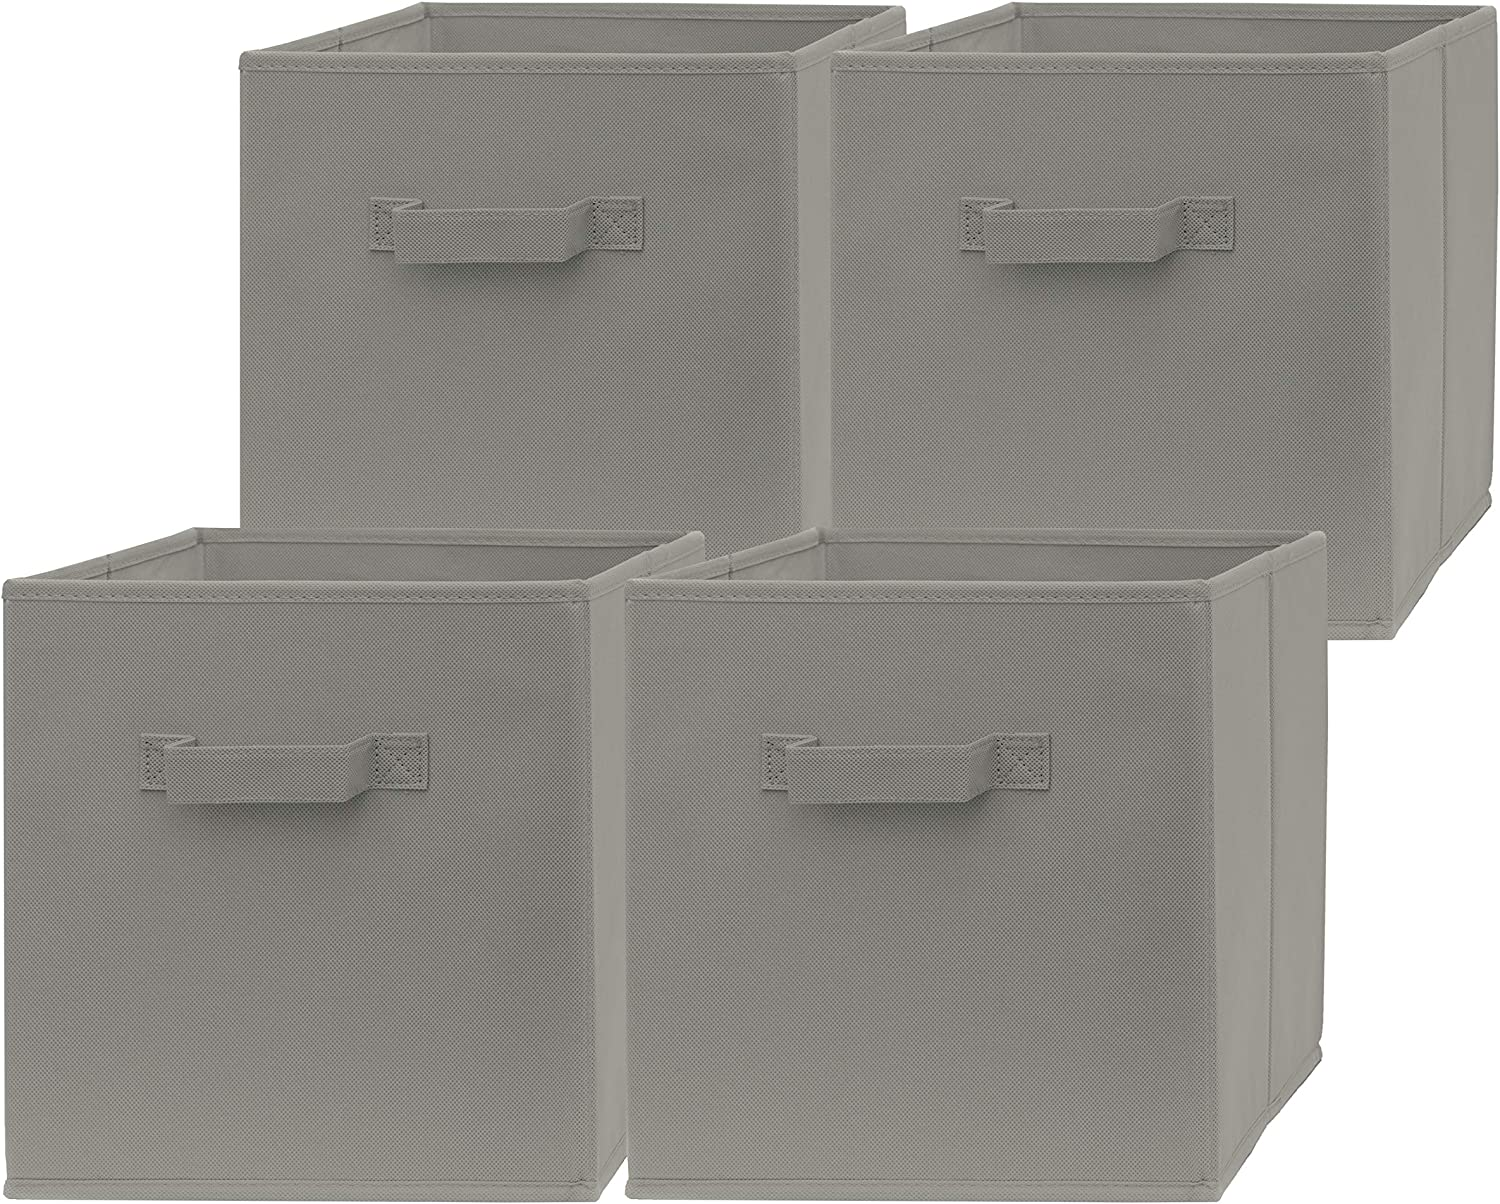 Pomatree 13x13x13 Inch Storage Cubes - 4 Pack - Large and Sturdy Storage Bins   Dual Handles, Foldable   Cube Organizer Bin   Fabric Baskets for Organizing Closet, Clothes and Toys (Grey)